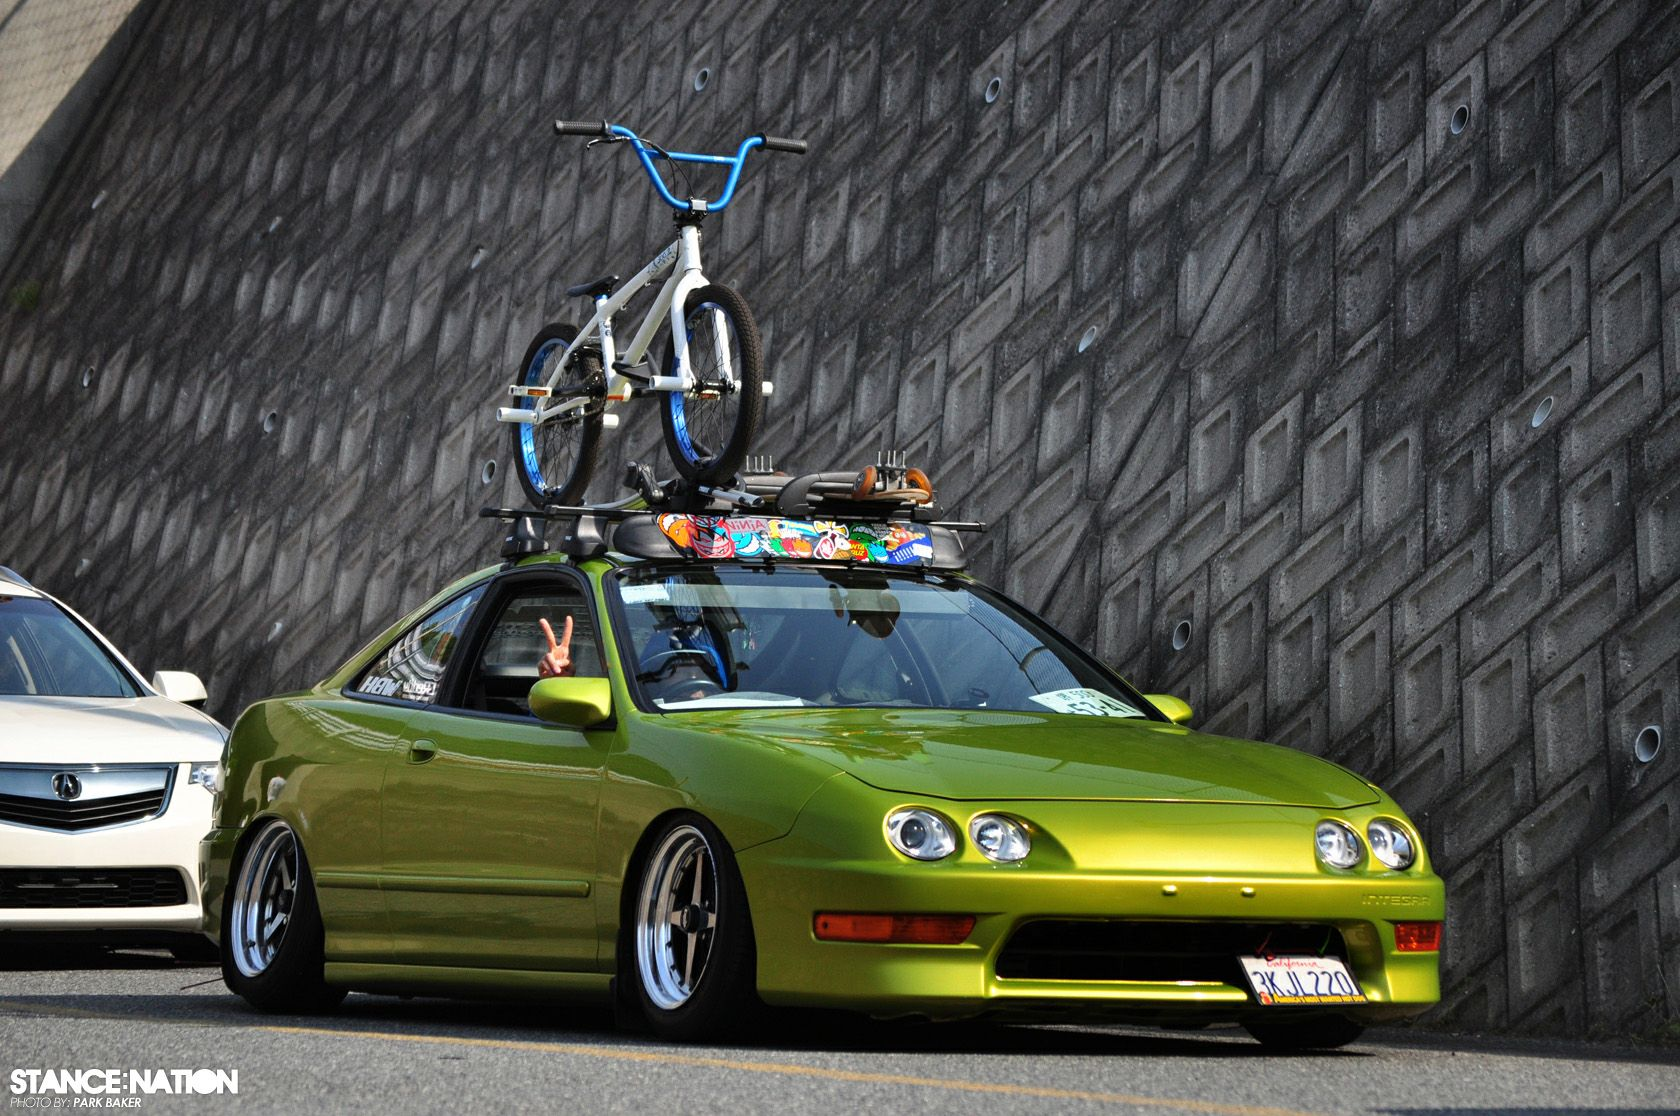 12 Best Proyects Images On Pinterest | Cars, Honda Civic And Japanese Cars